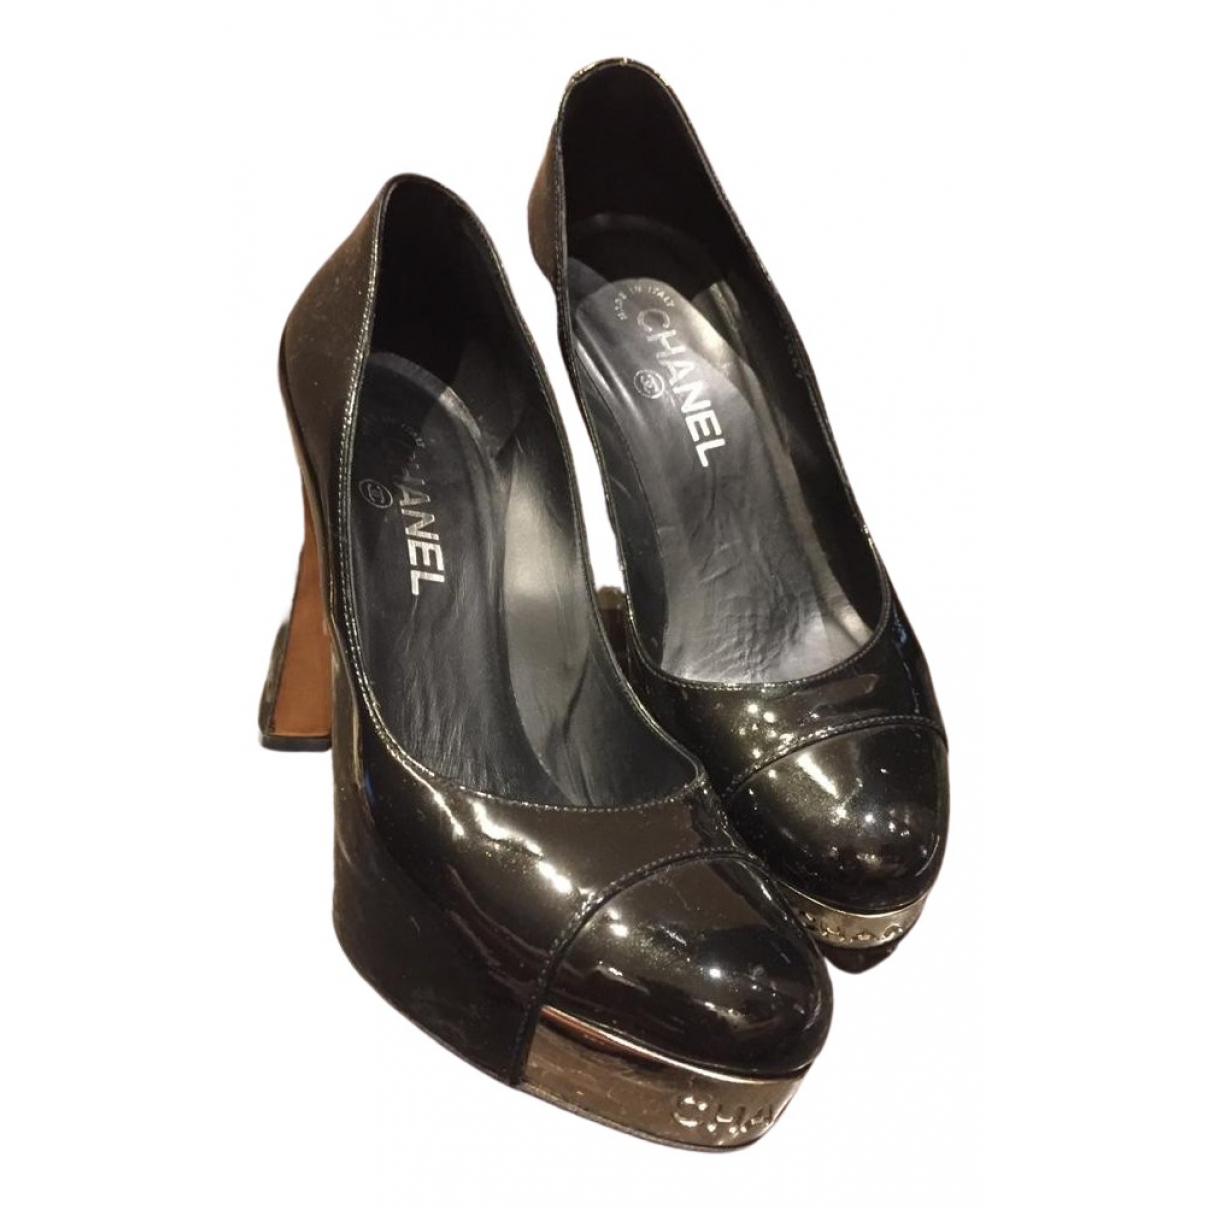 Chanel \N Black Patent leather Heels for Women 38 EU